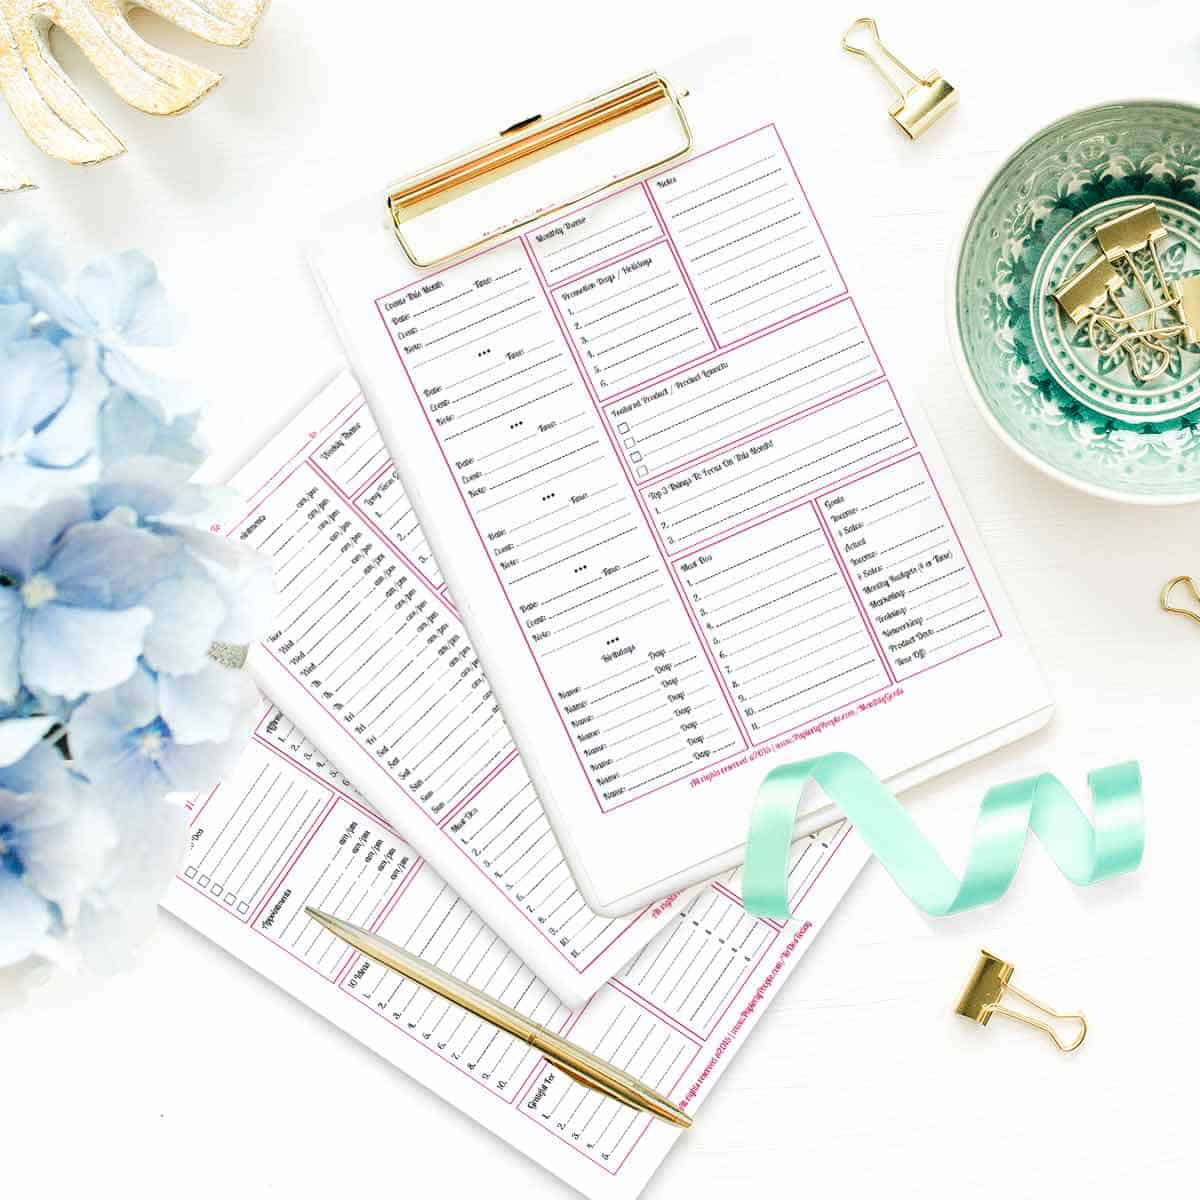 Business Calendar Kit - Printable planner pages for Staples ARC Notebook or 3 Ring Binders.